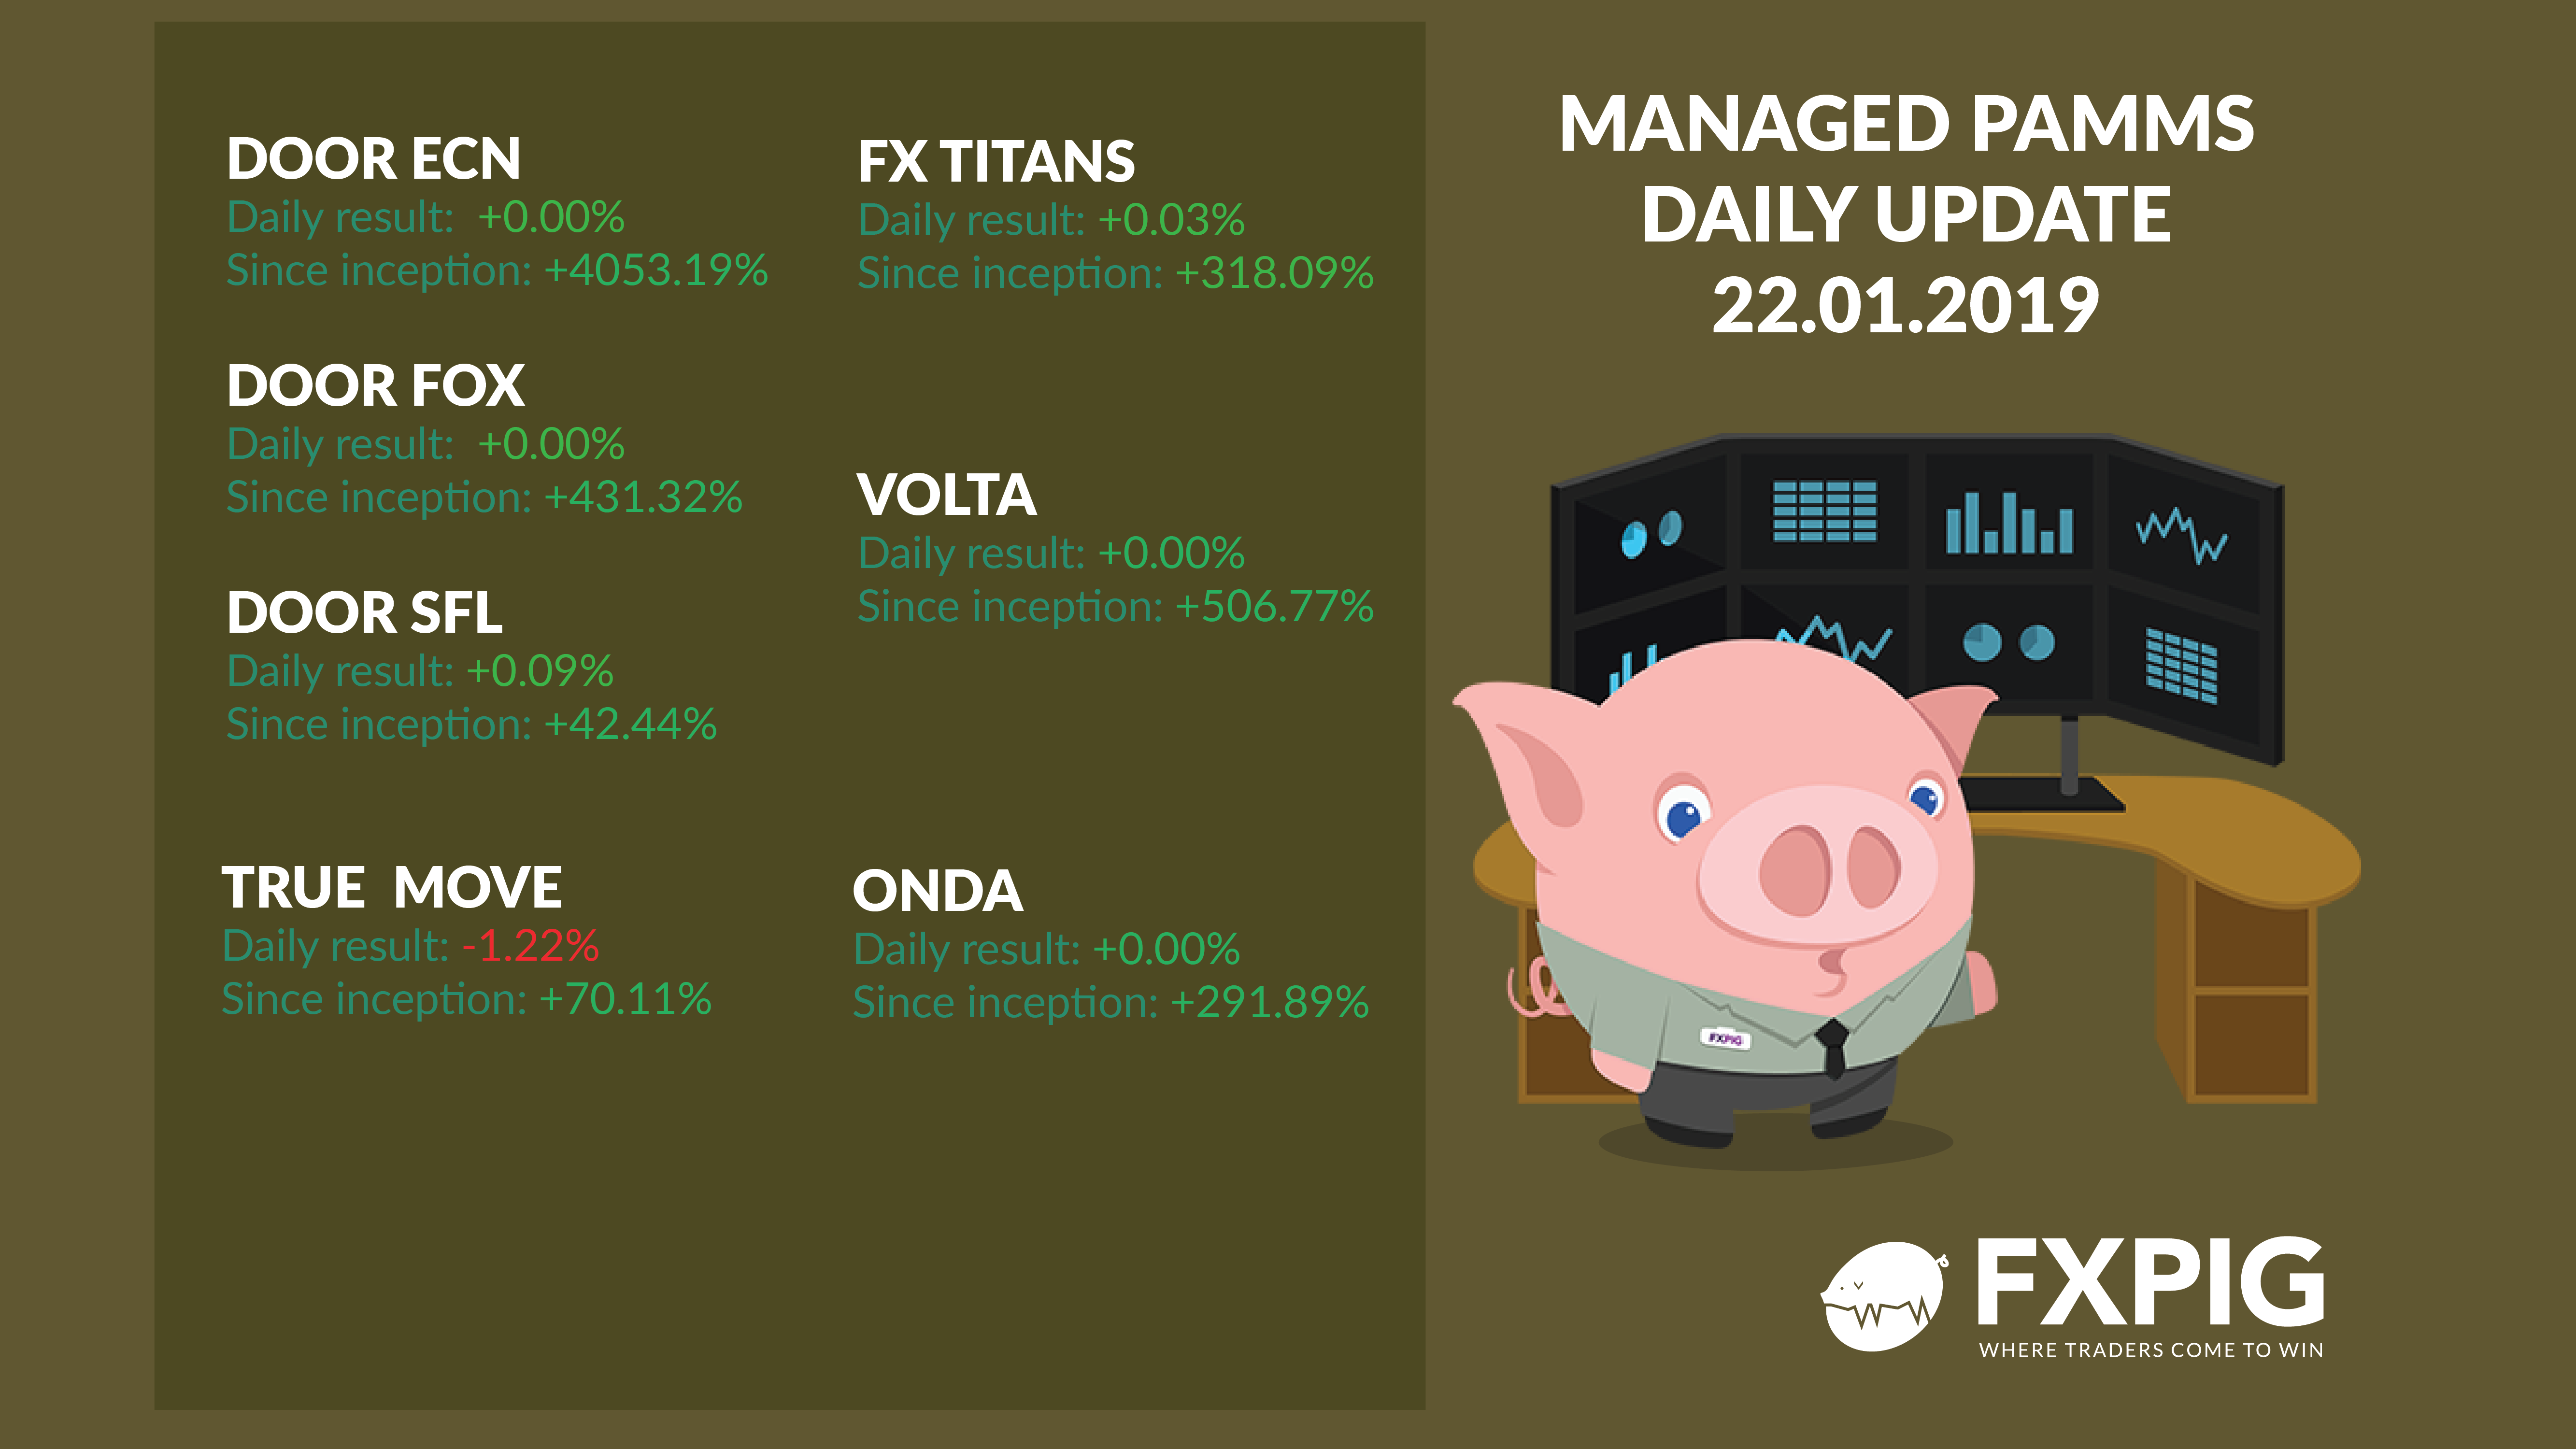 Forex_Trading_Fx_Trader_FXPIG_PAMMS_MANAGED_ACCOUNTS_PROFIT_22.01.2019